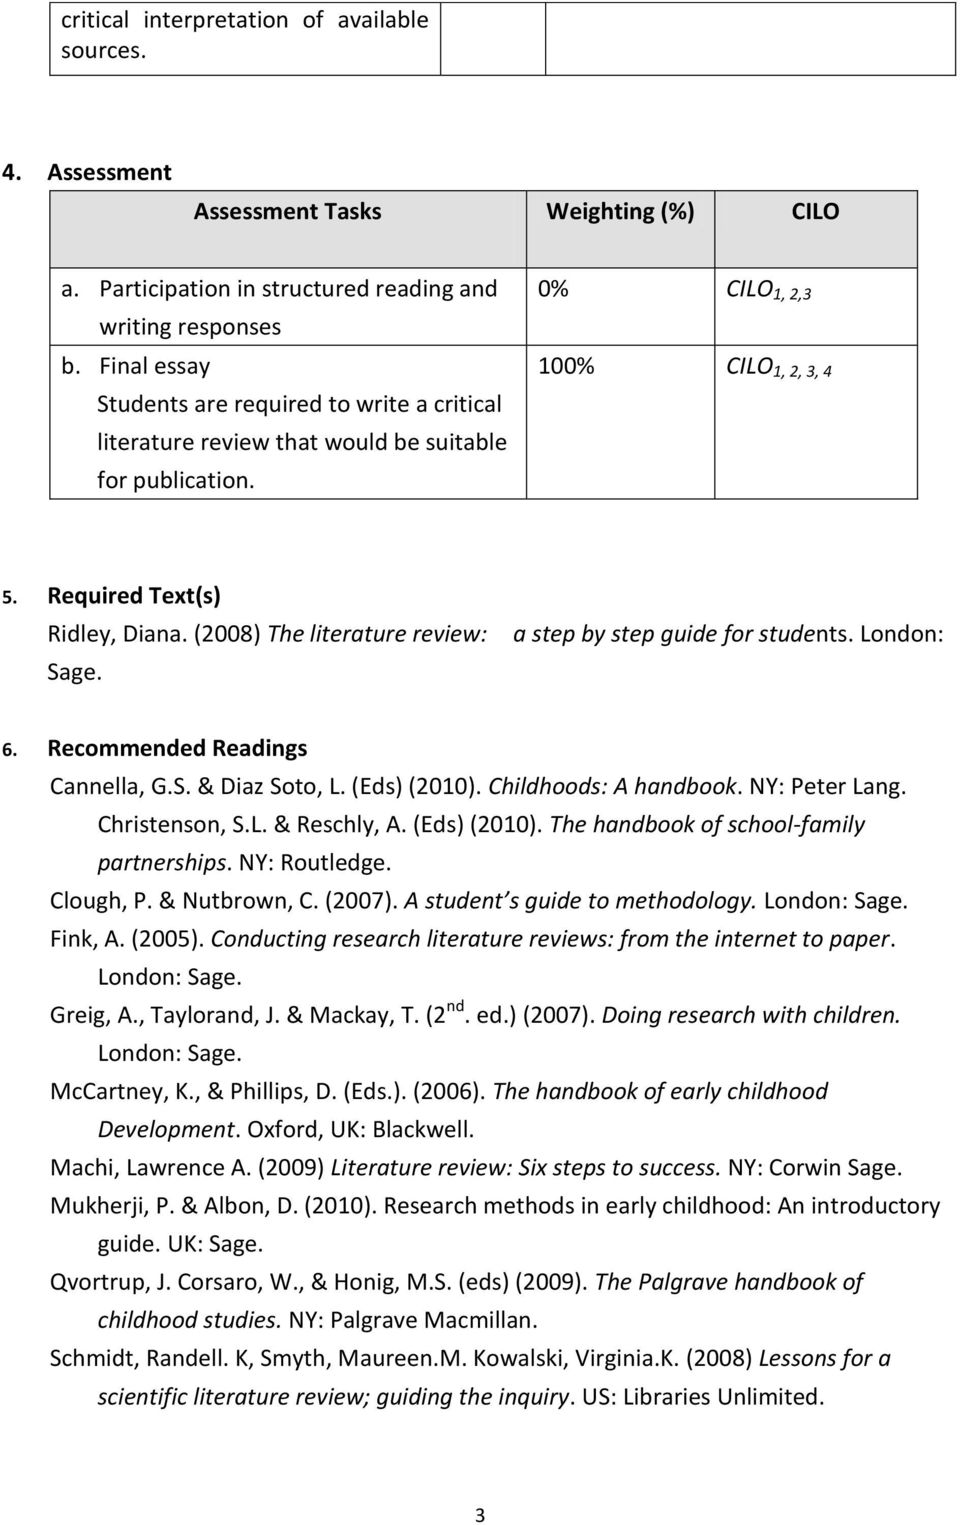 (2008) The literature review: Sage. a step by step guide for students. London: 6. Recommended Readings Cannella, G.S. & Diaz Soto, L. (Eds) (2010). Childhoods: A handbook. NY: Peter Lang.